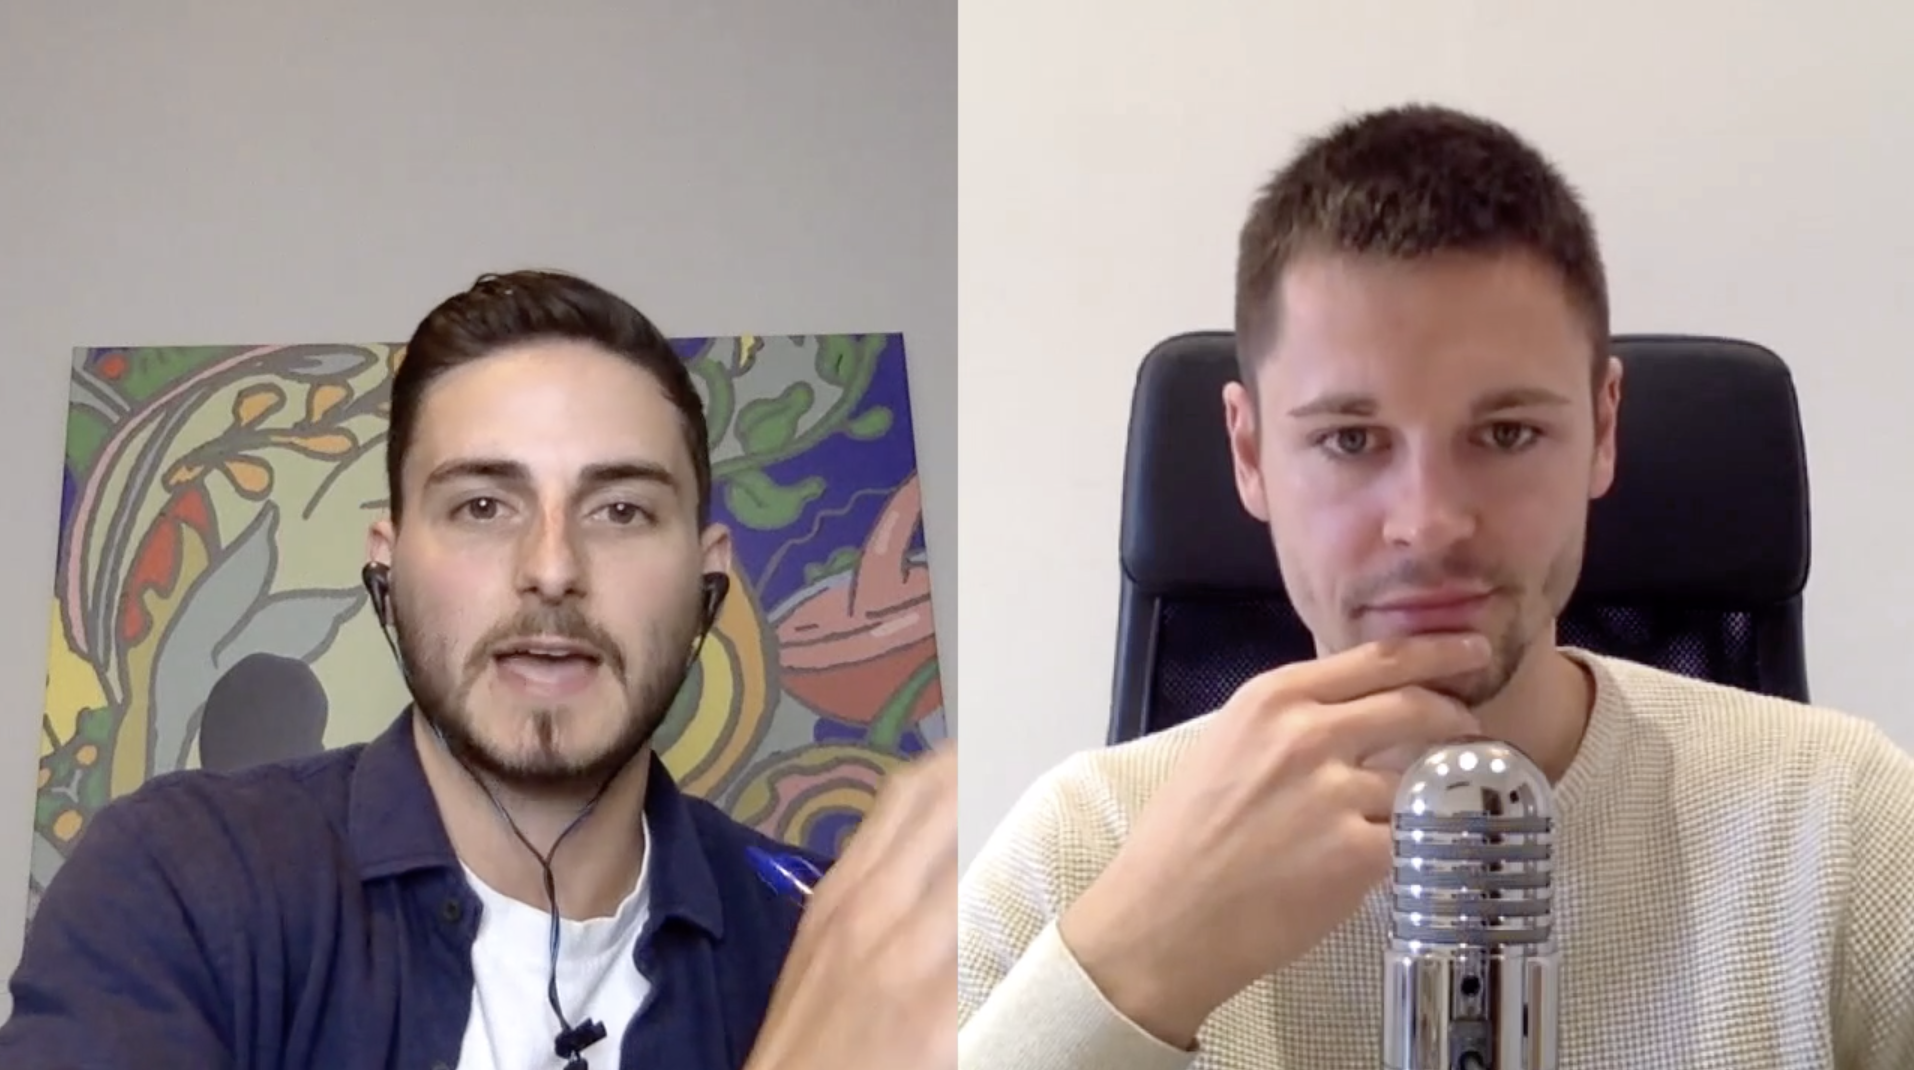 How Patrick Grew His Business From $12,000 - $30,000 Per Month